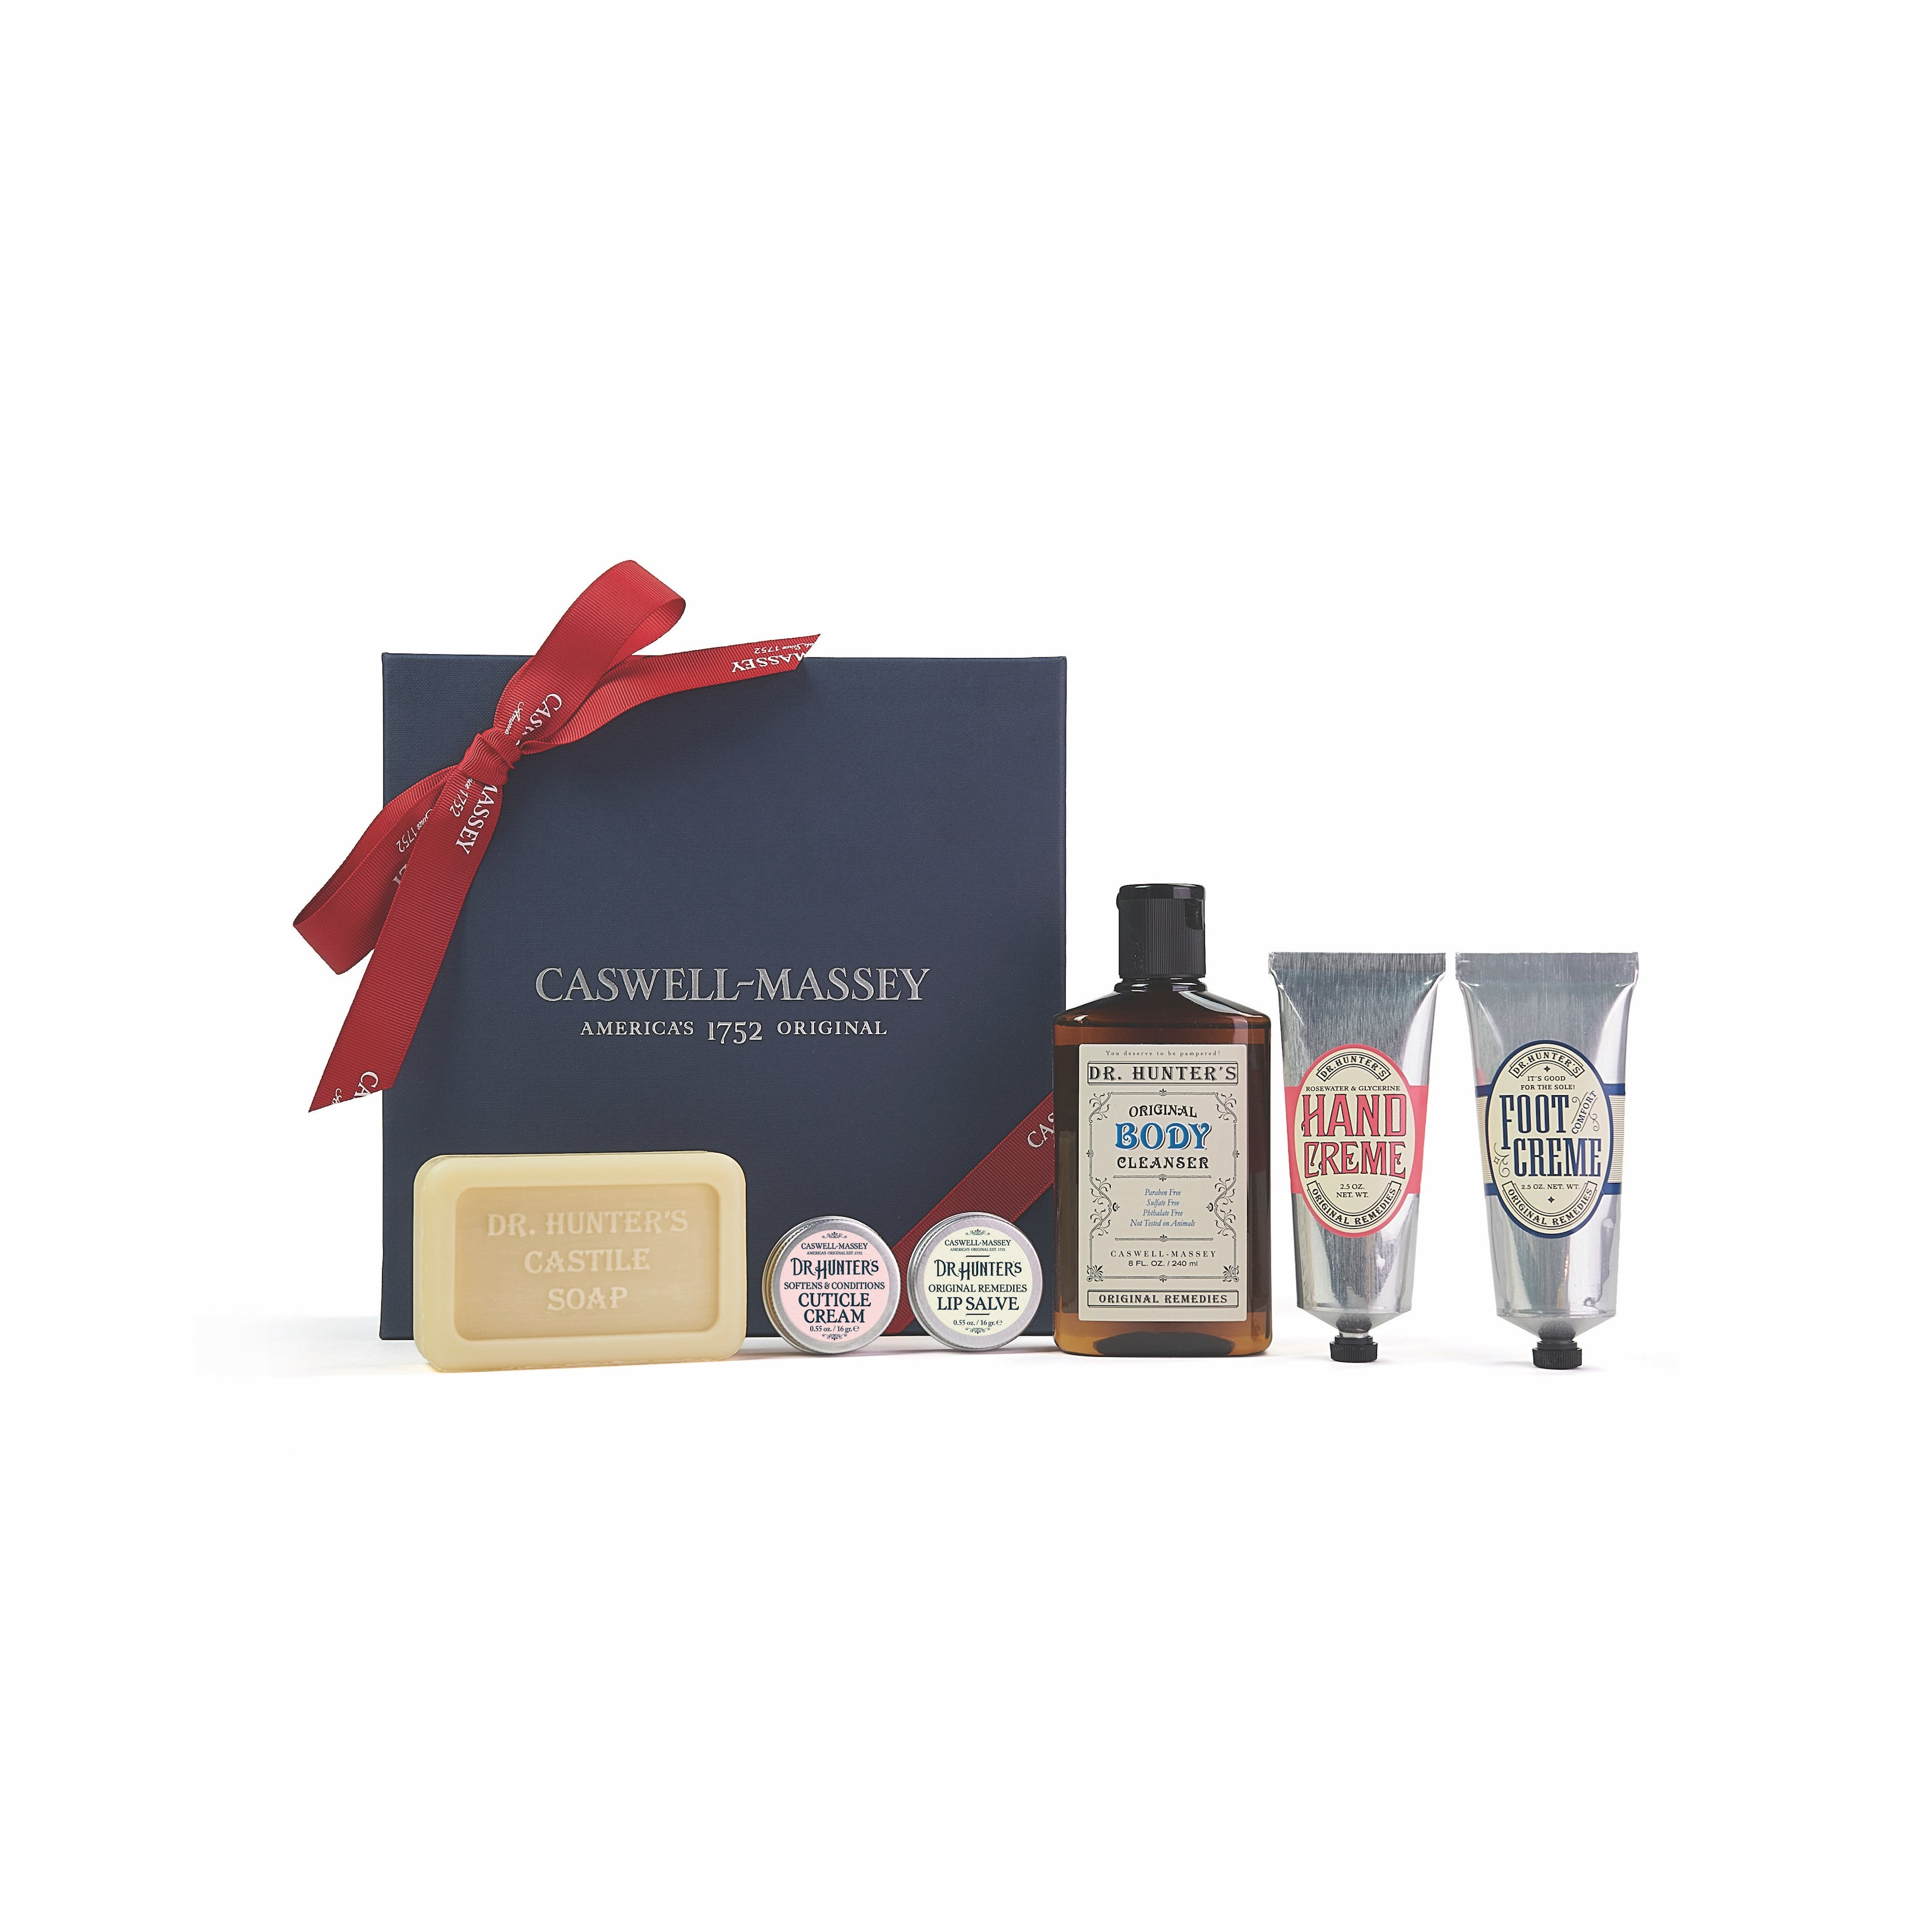 Dr. Hunter's Original Remedies Gift Set